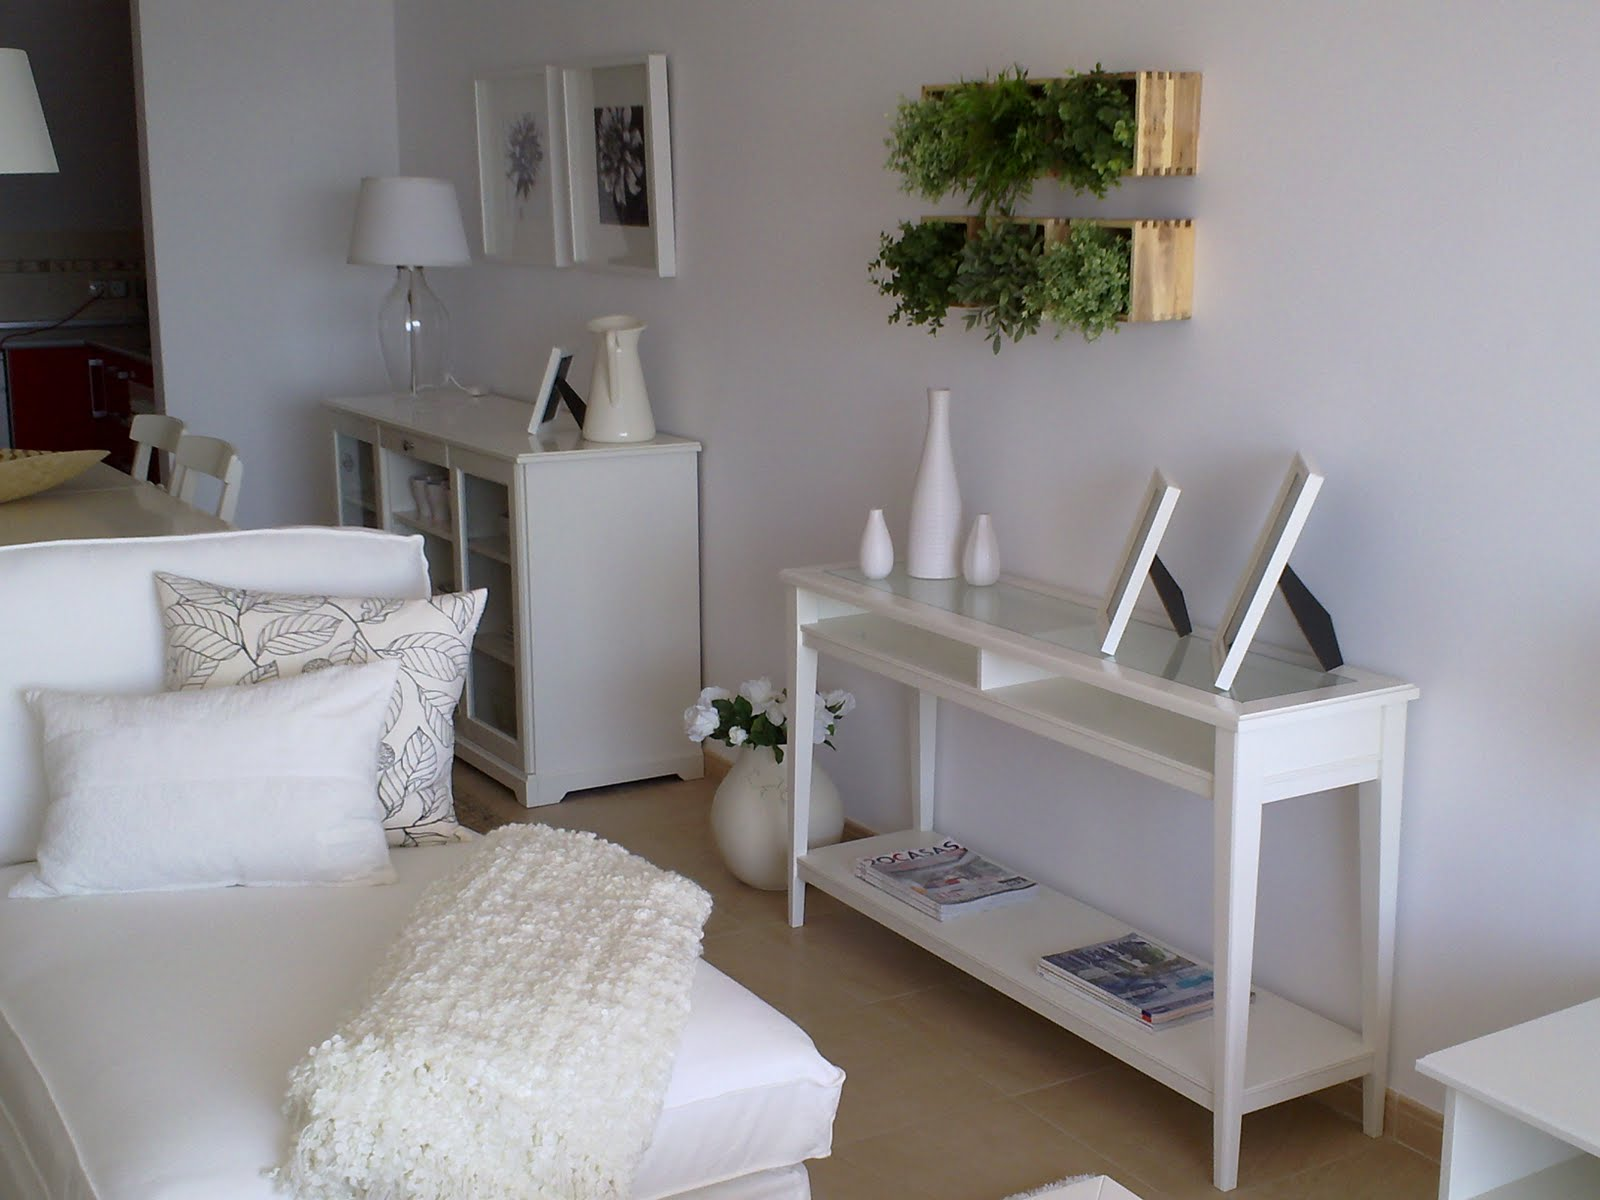 Decoraci n hogar y business i k e a by etimoe art almeria for Muebles piso completo ikea